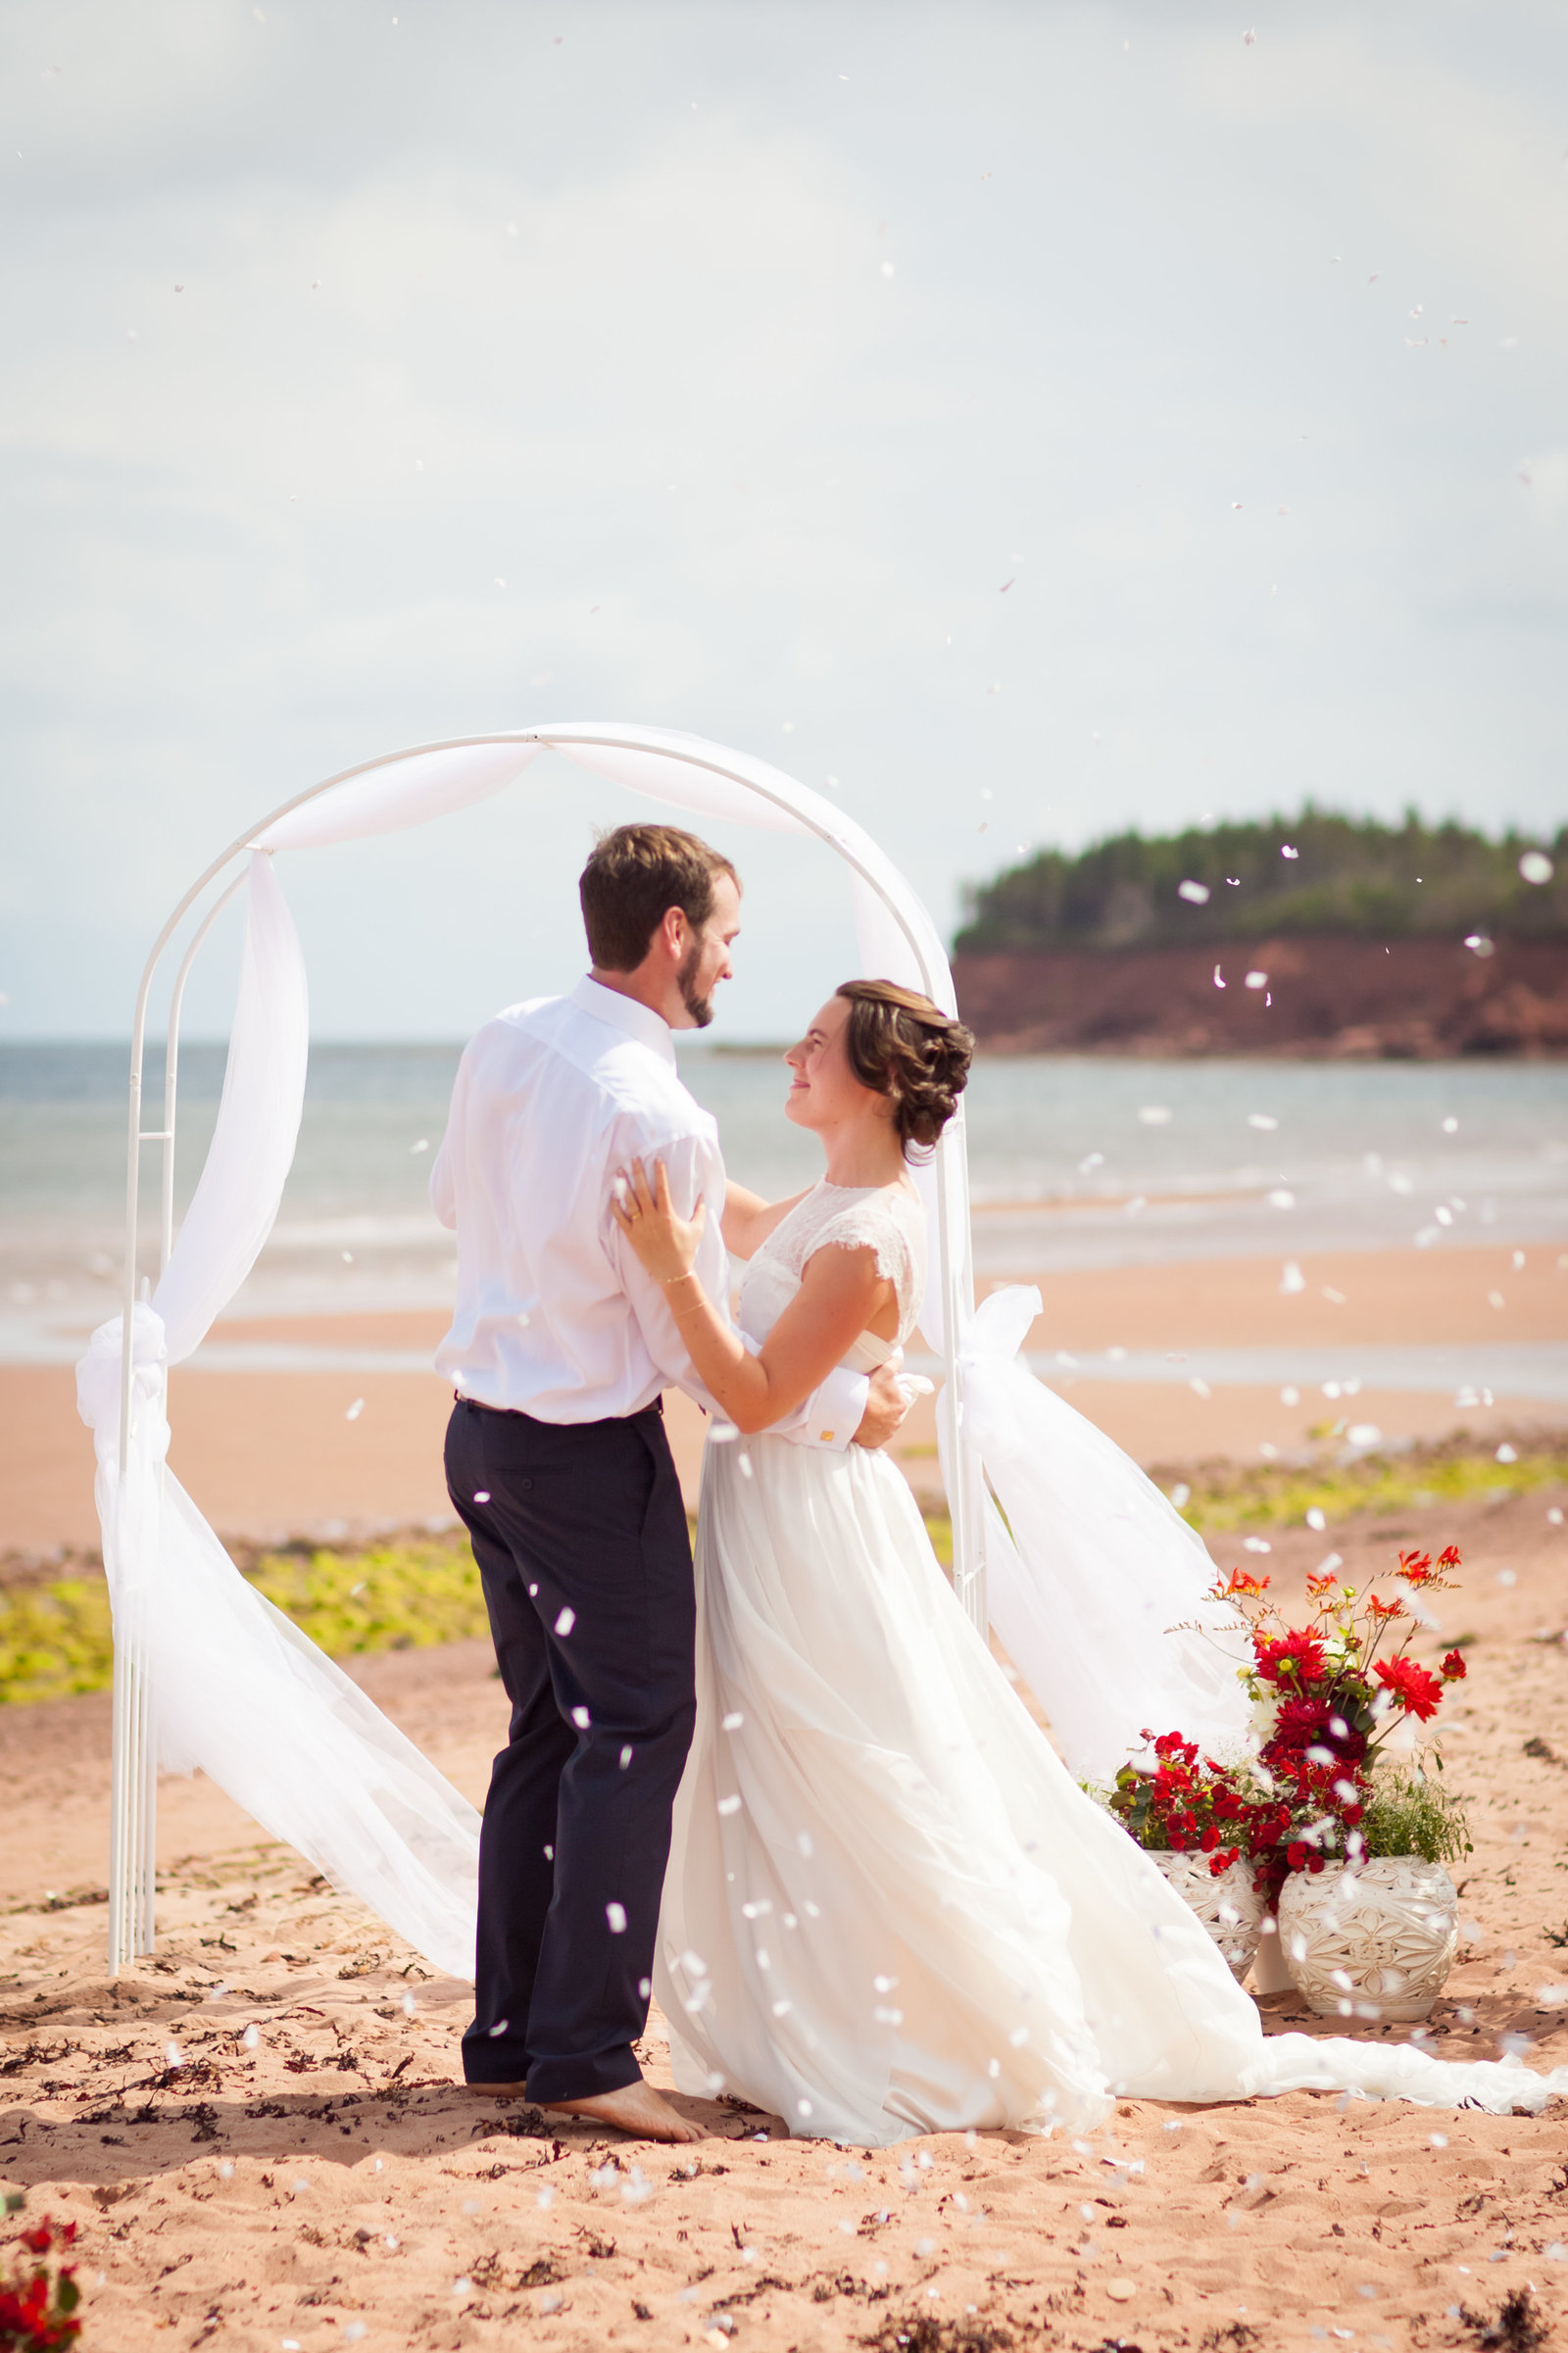 Saint John NB Wedding Photographers & Filmmakers - Souris, PEI Wedding39